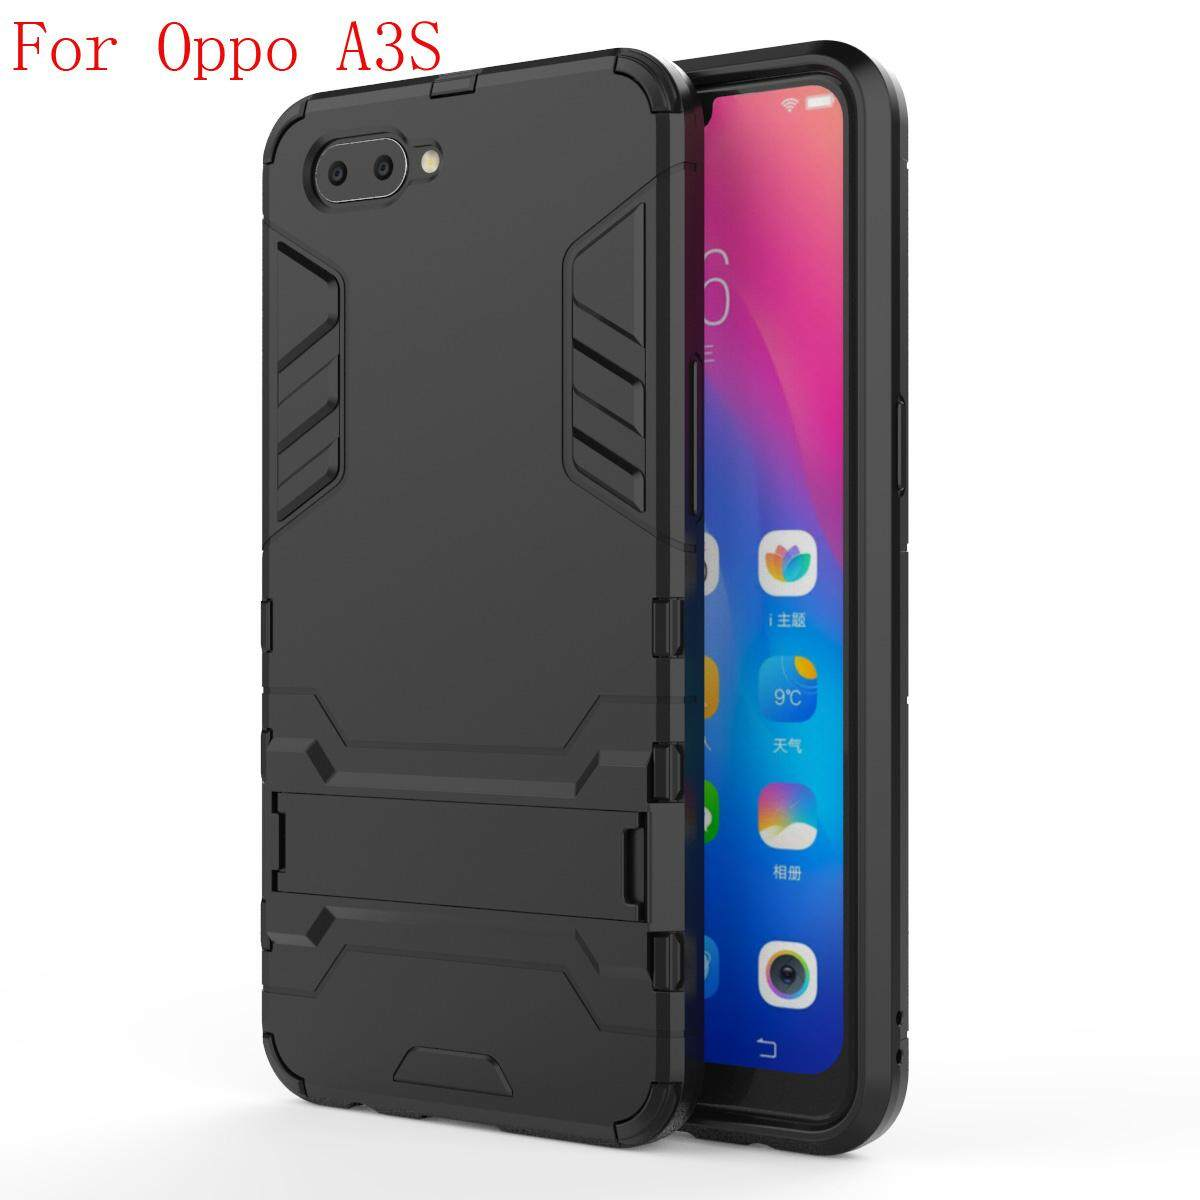 For Oppo A3s/Realme C1 Armor Dual Layer Shockproof Case Built-in Holder casing